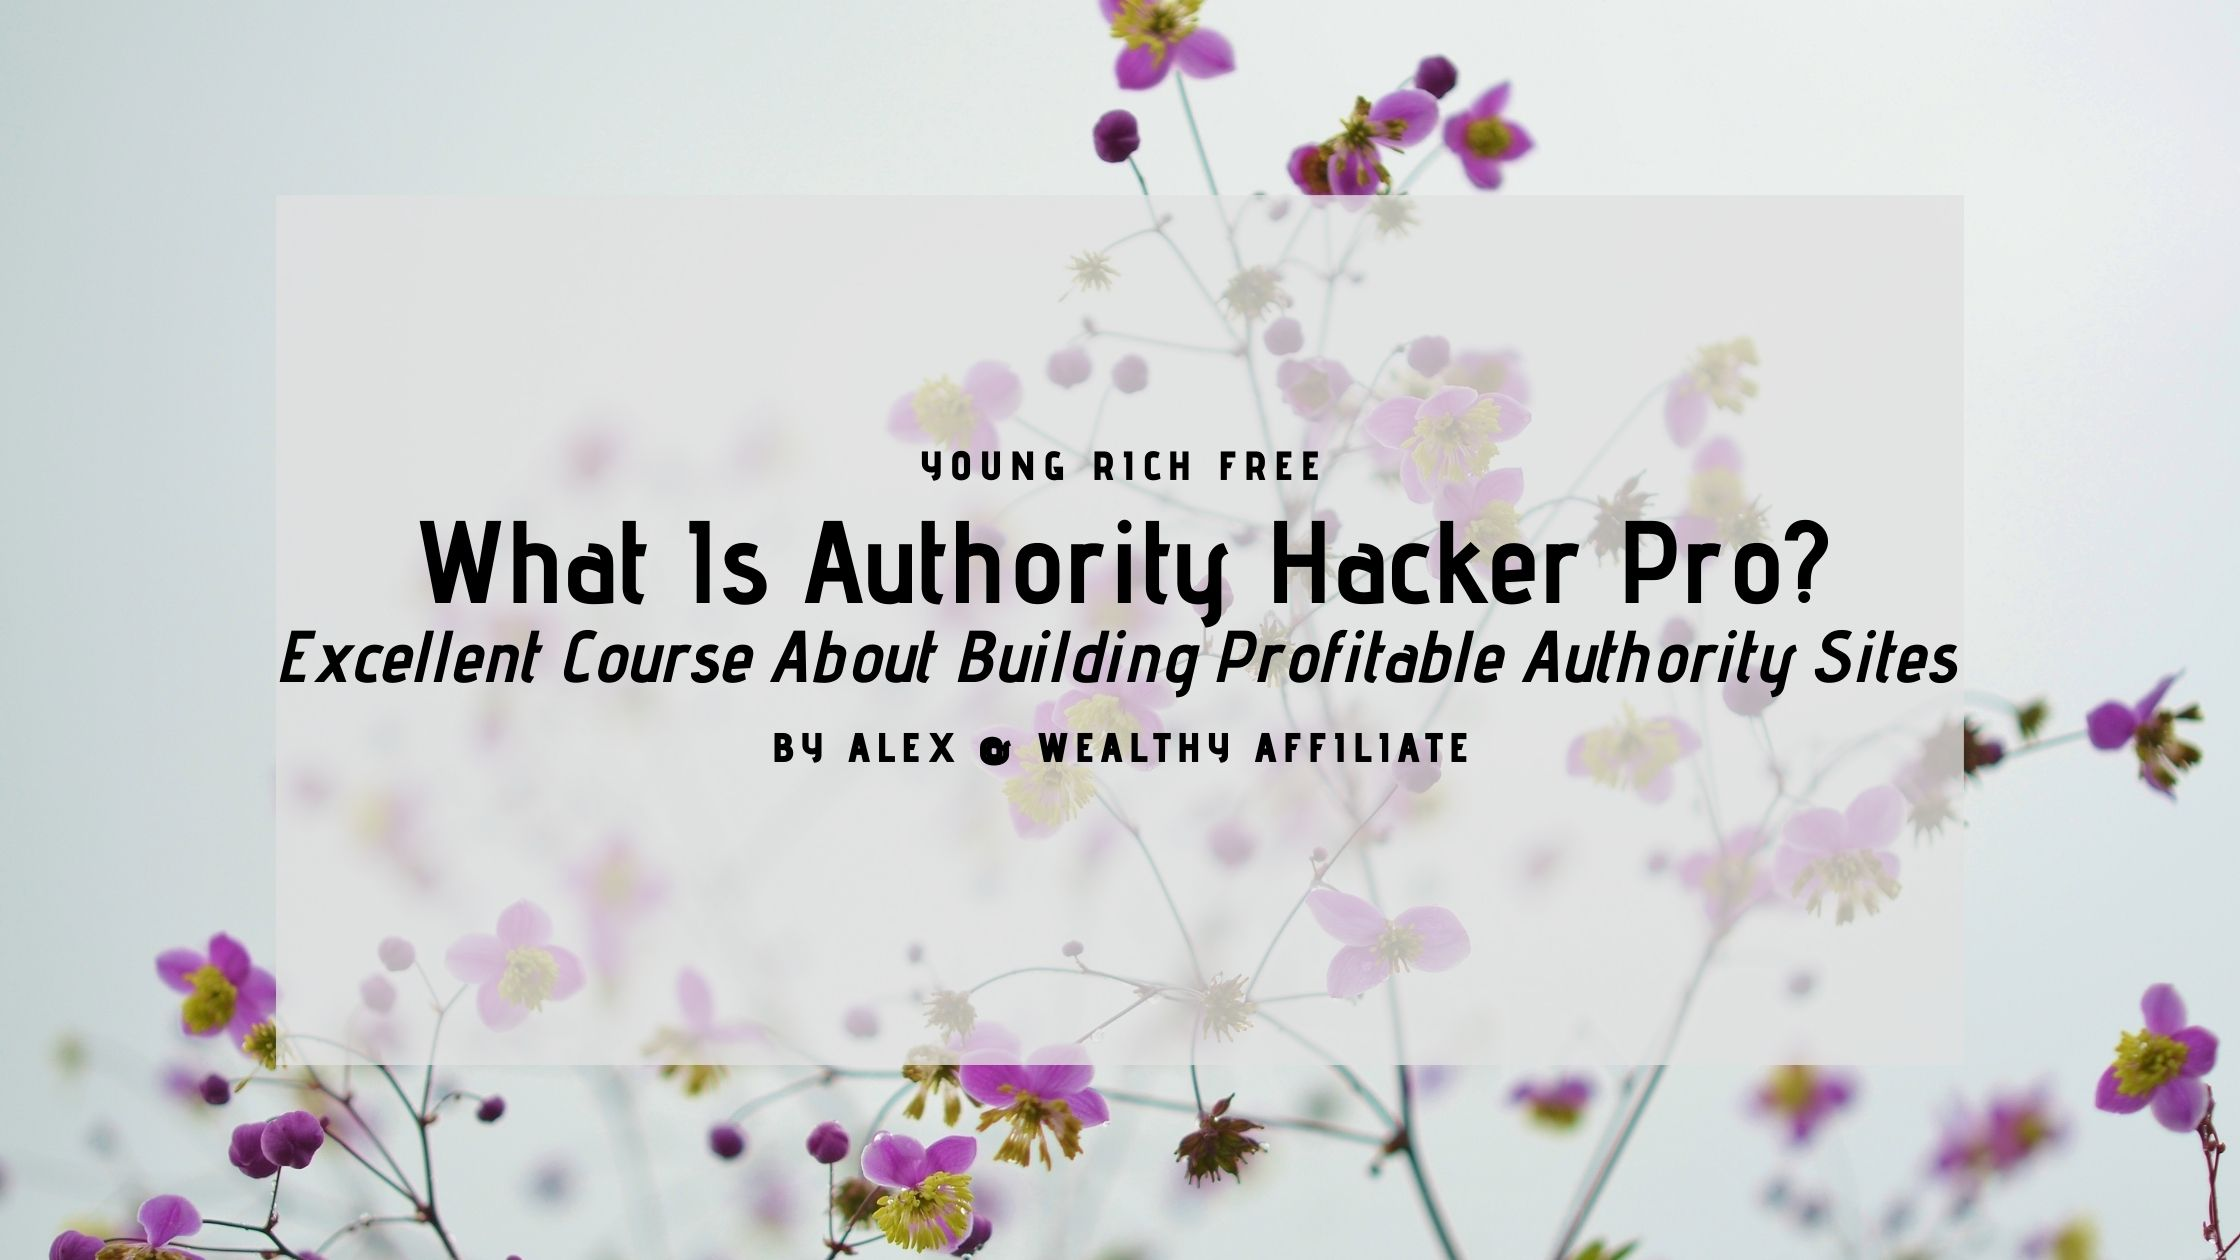 Authority Hacker Pro